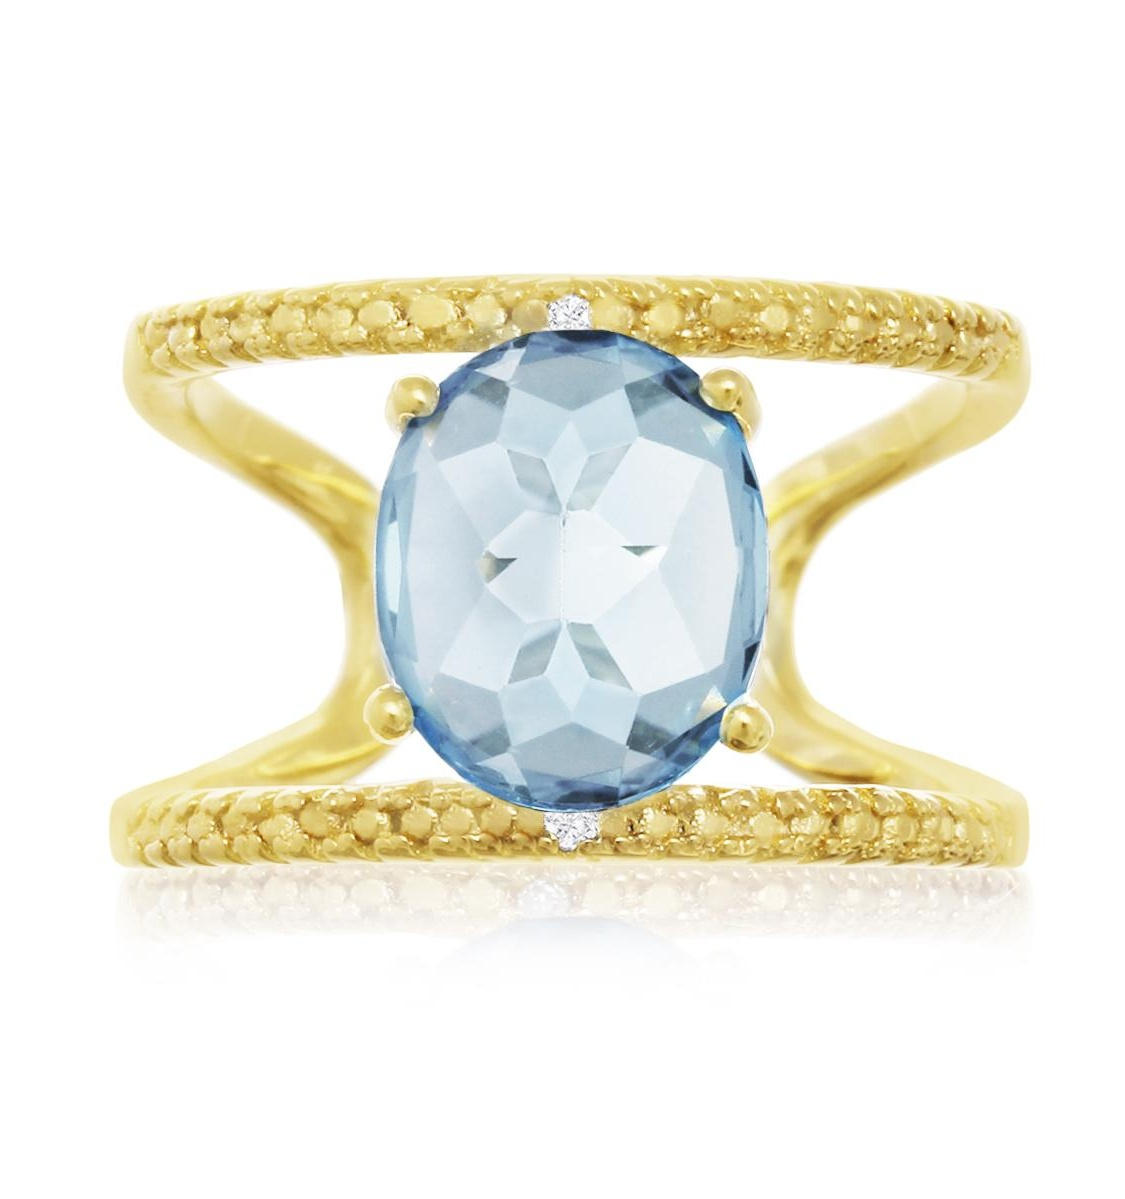 14 Karat Yellow Gold Over Sterling Silver 3.40 Carat Blue Topaz and Diamond Open Shank Ring